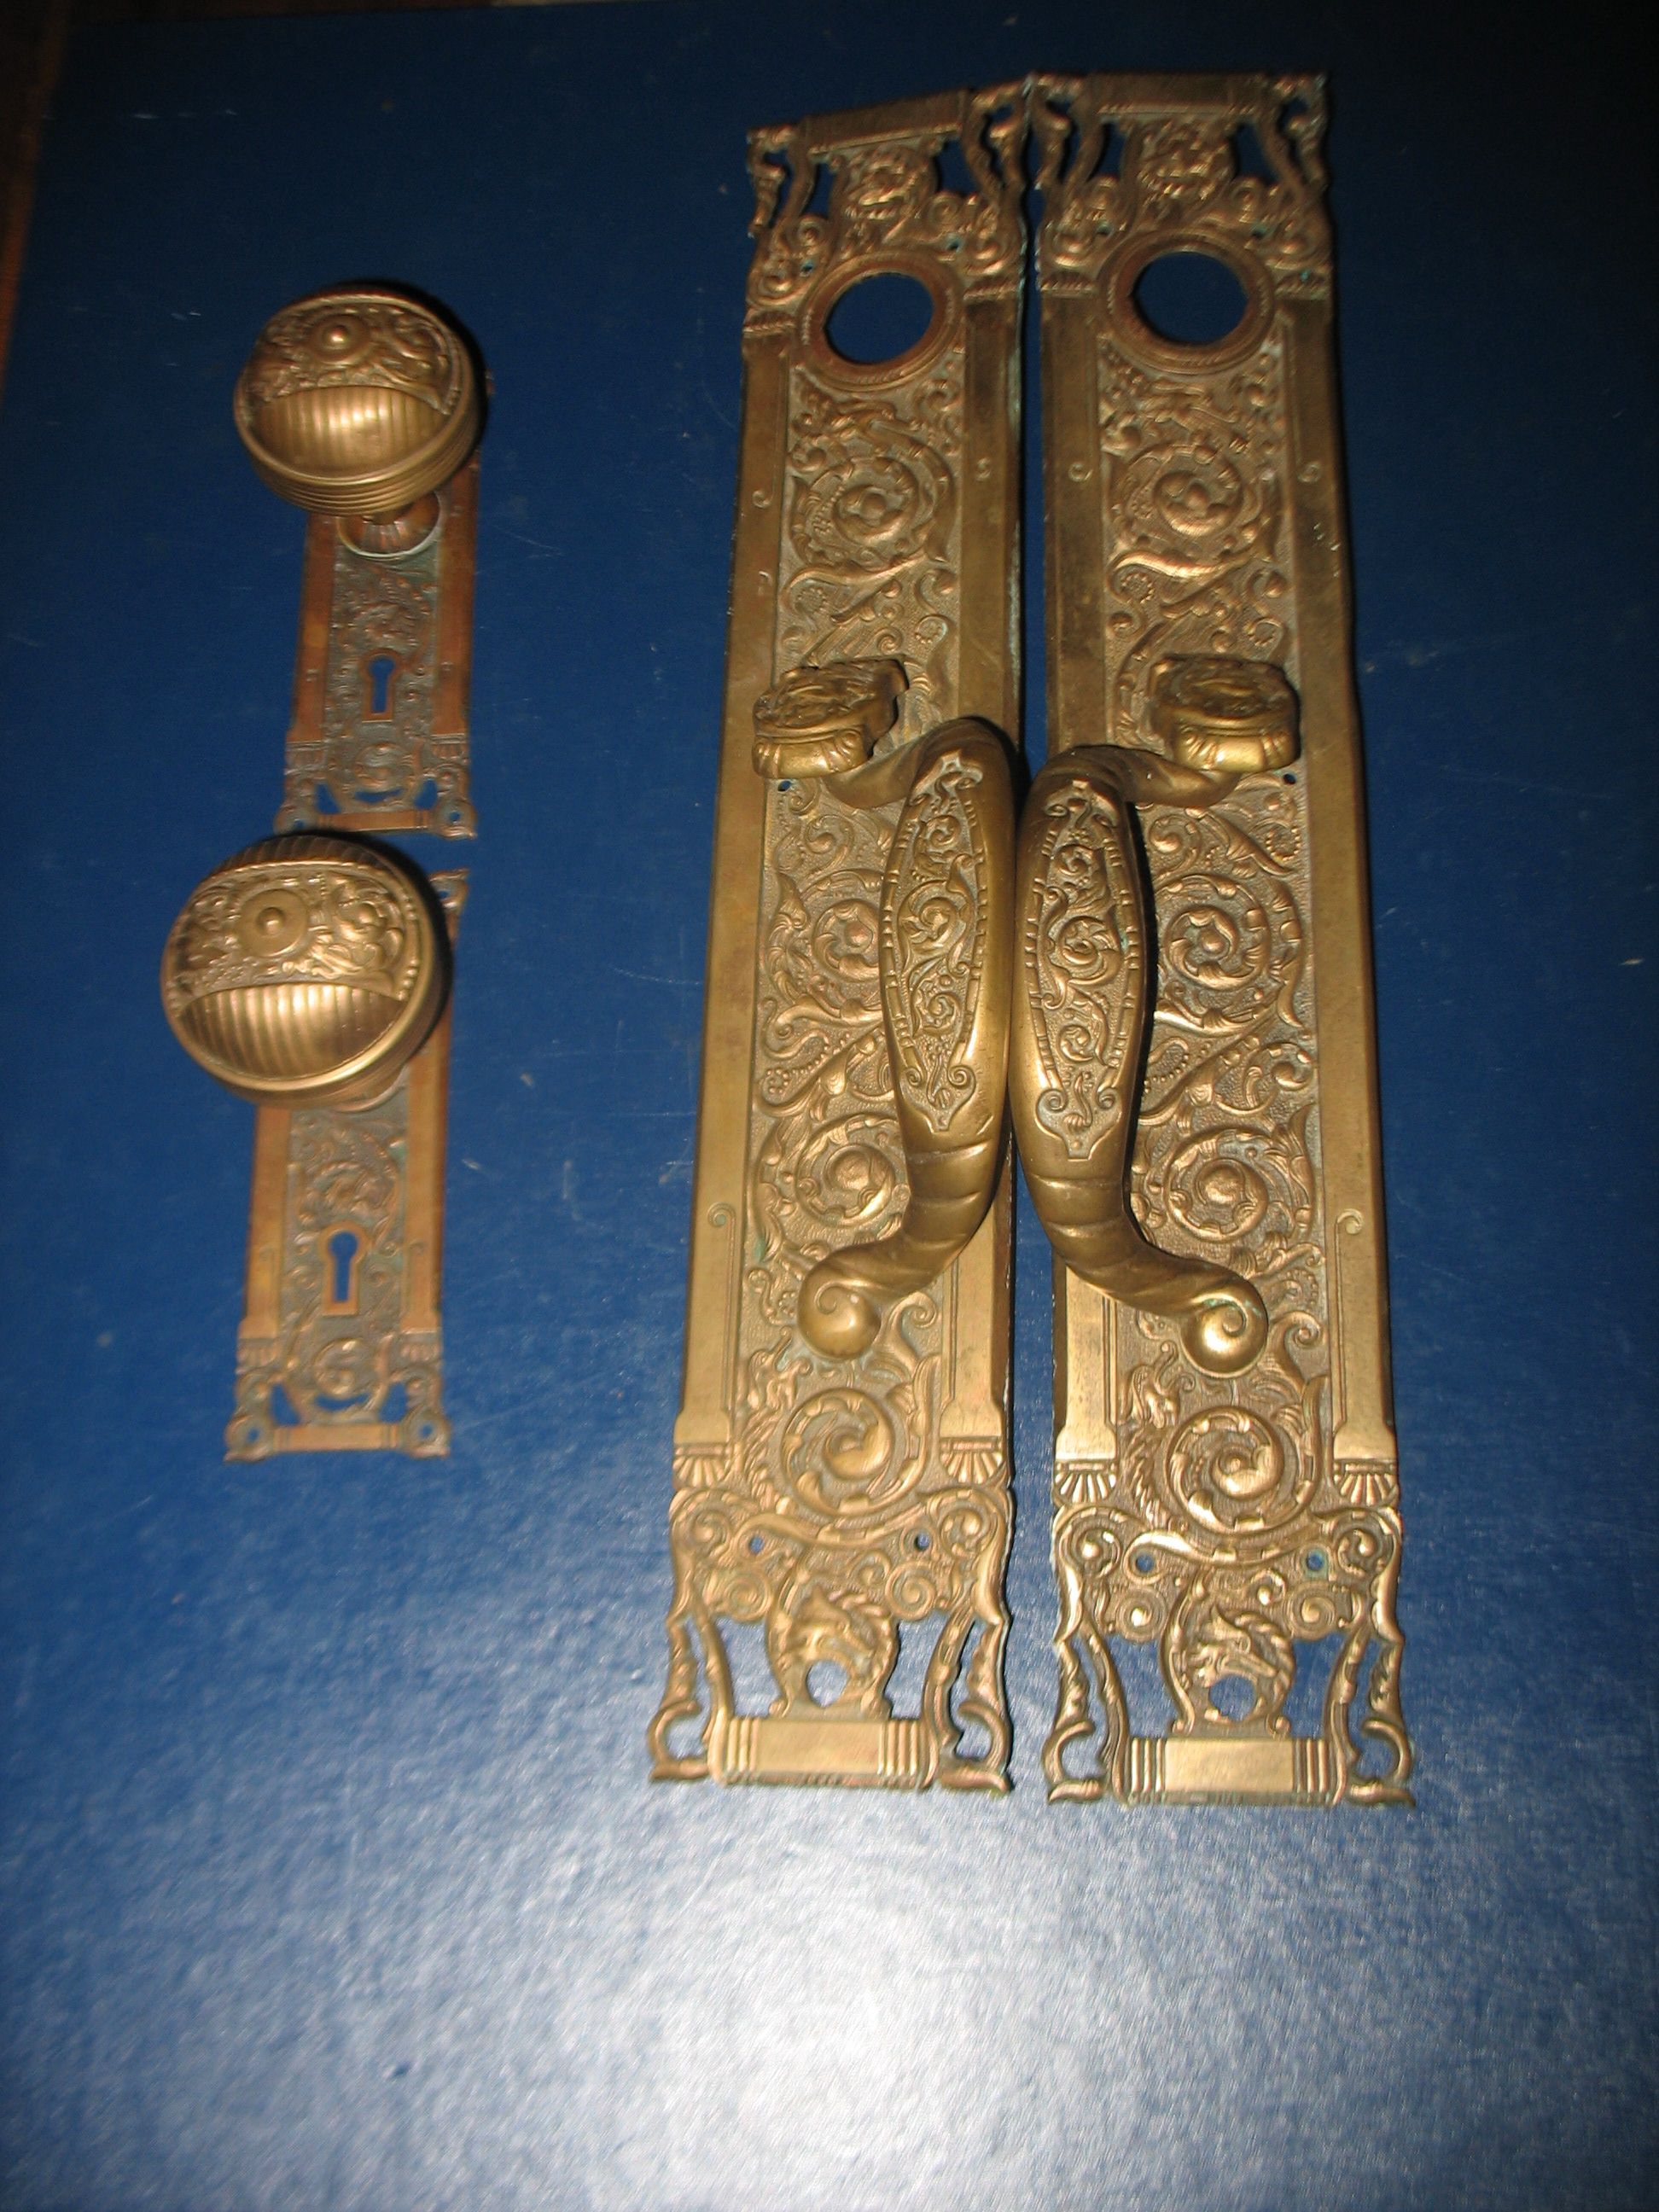 "This bronze Entry Door Set is authentic antique door hardware at its very best! The Reading Hardware Company created this gorgeous pattern in the late l800's. It  is the ""Columbian""pattern cast in bronze and caleed. The set consists of two thumb paddle door pulls measuring 18 1/2 inches long X 3 1/4 inches wide. There are two escutcheons, 6 inches long X 2 inches wide, and 2 door knobs  all with the famous wolf/fox heads on each piece, beautifully detailed and heavily cast."